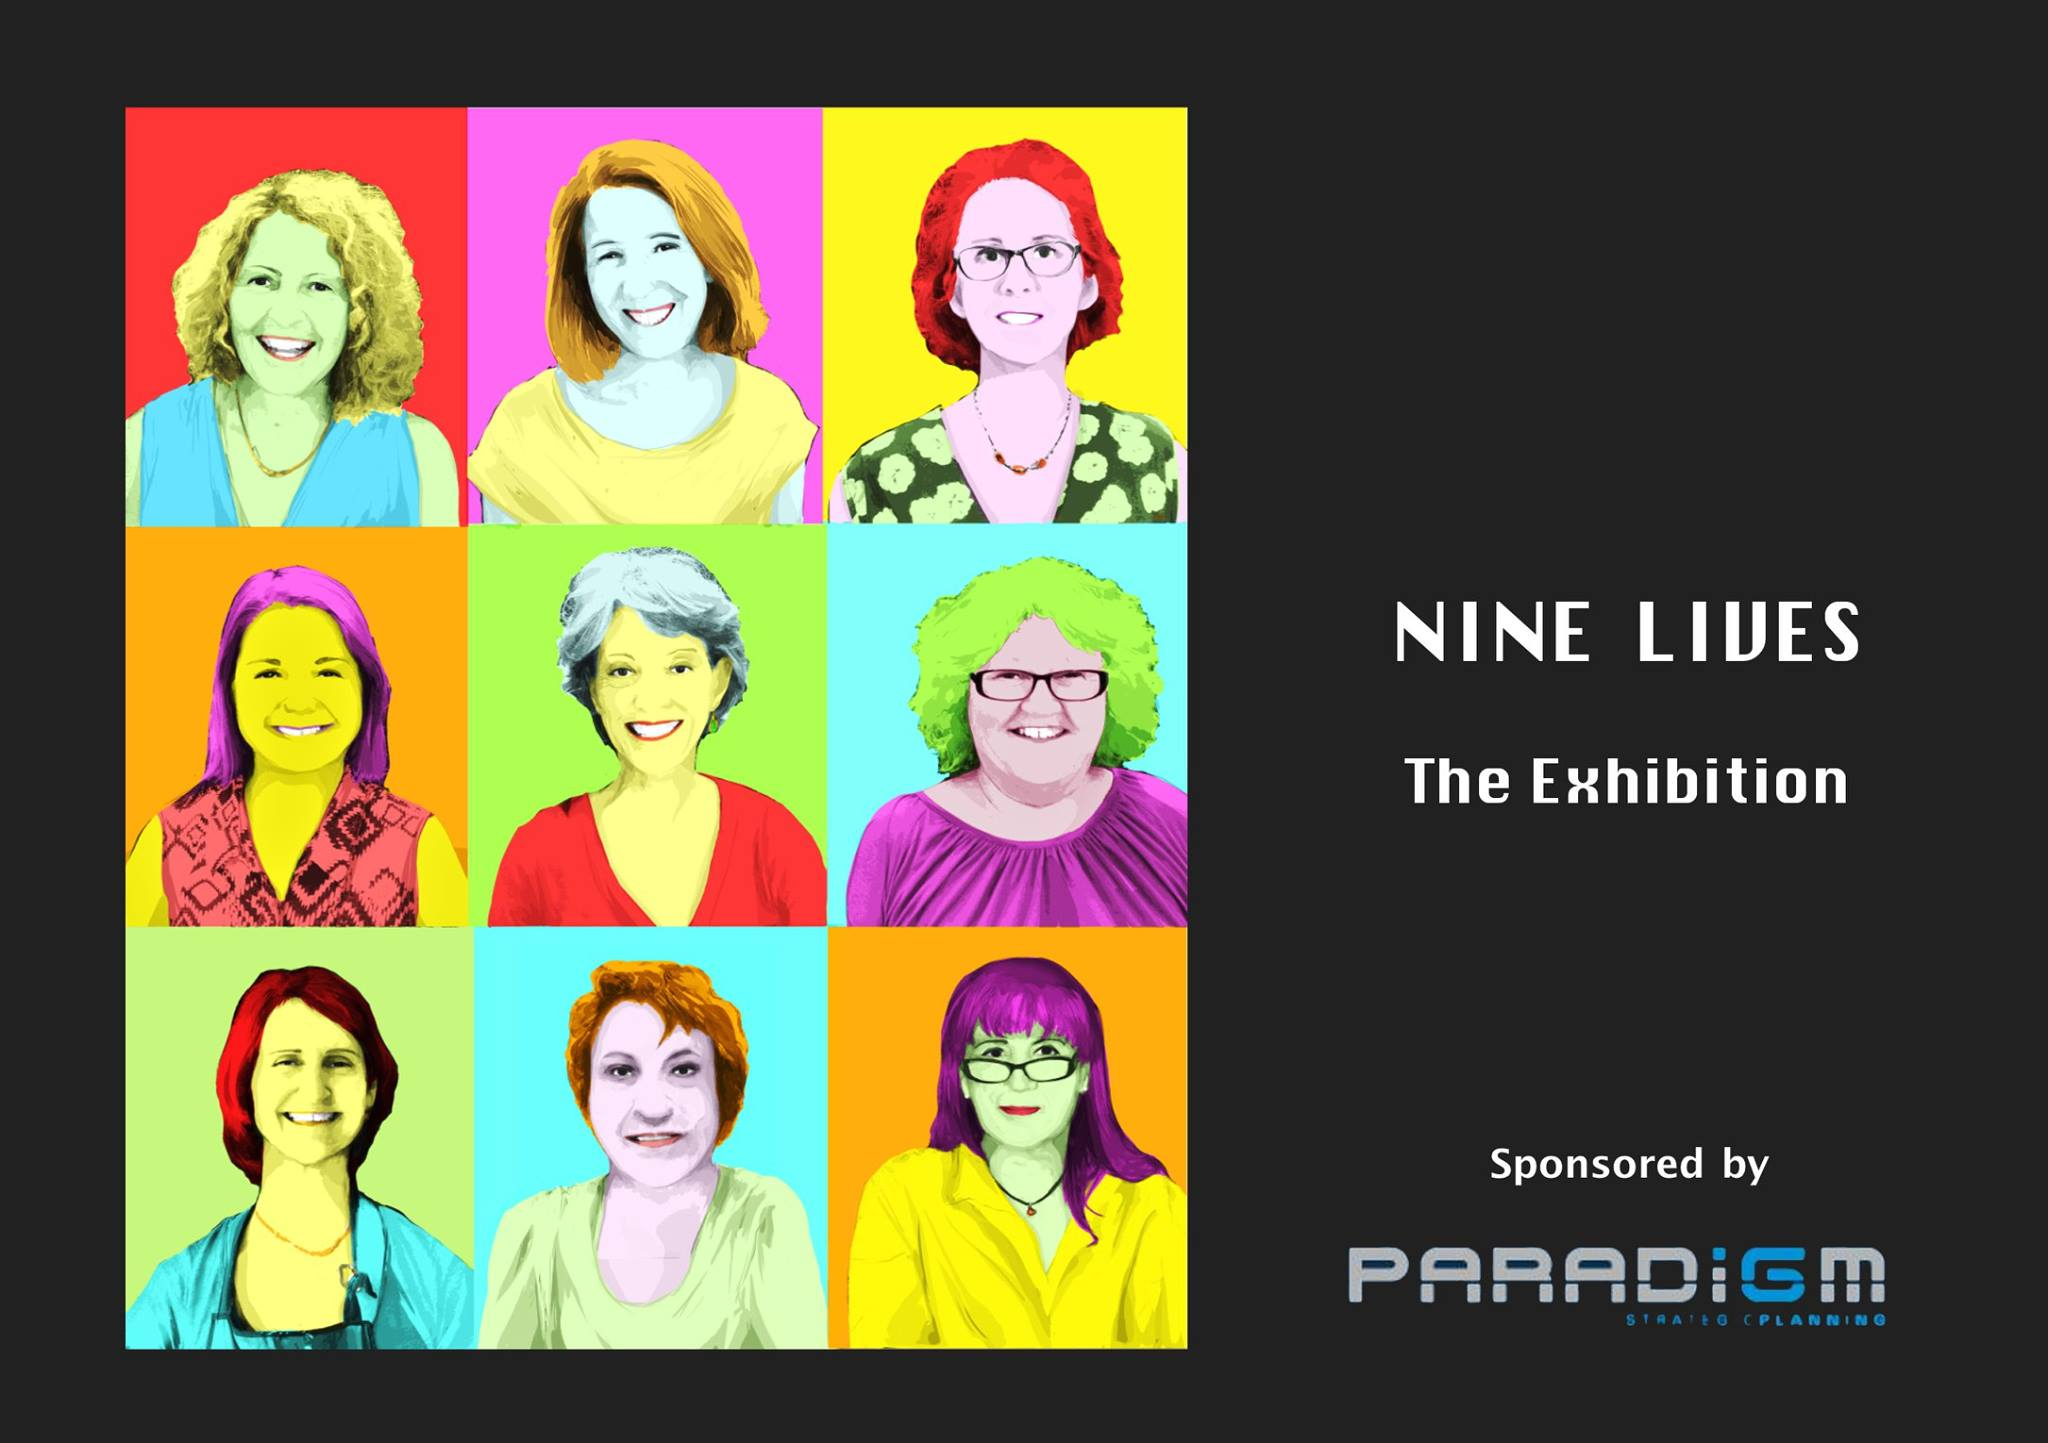 Nine Lives exhibition at Atwell Gallery